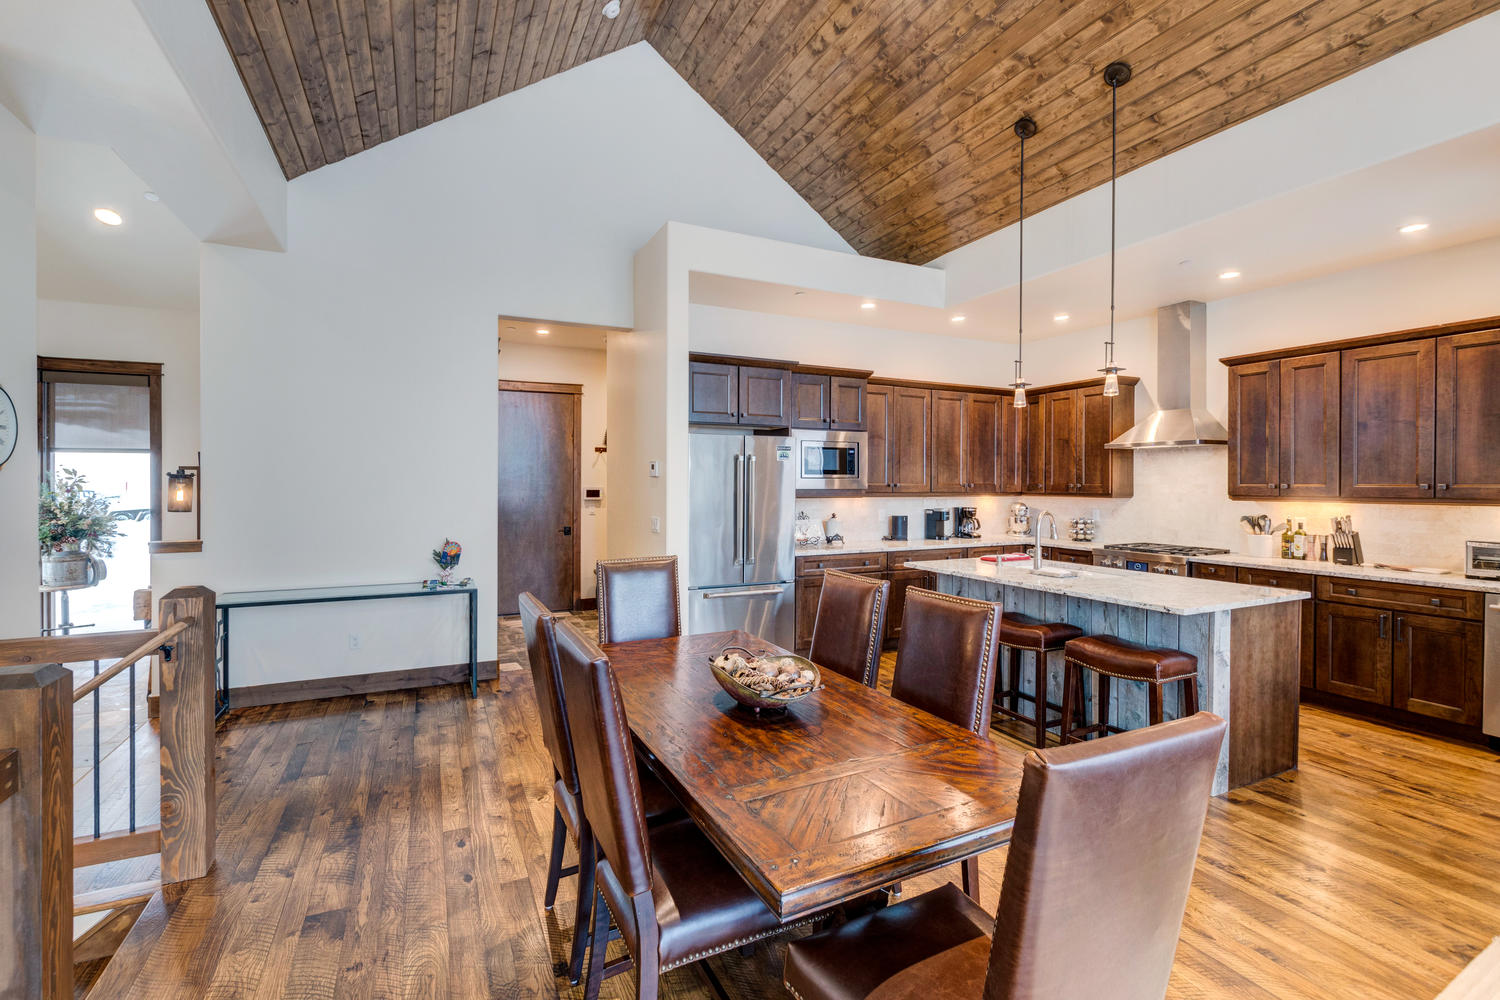 Open dining and kitchen areas